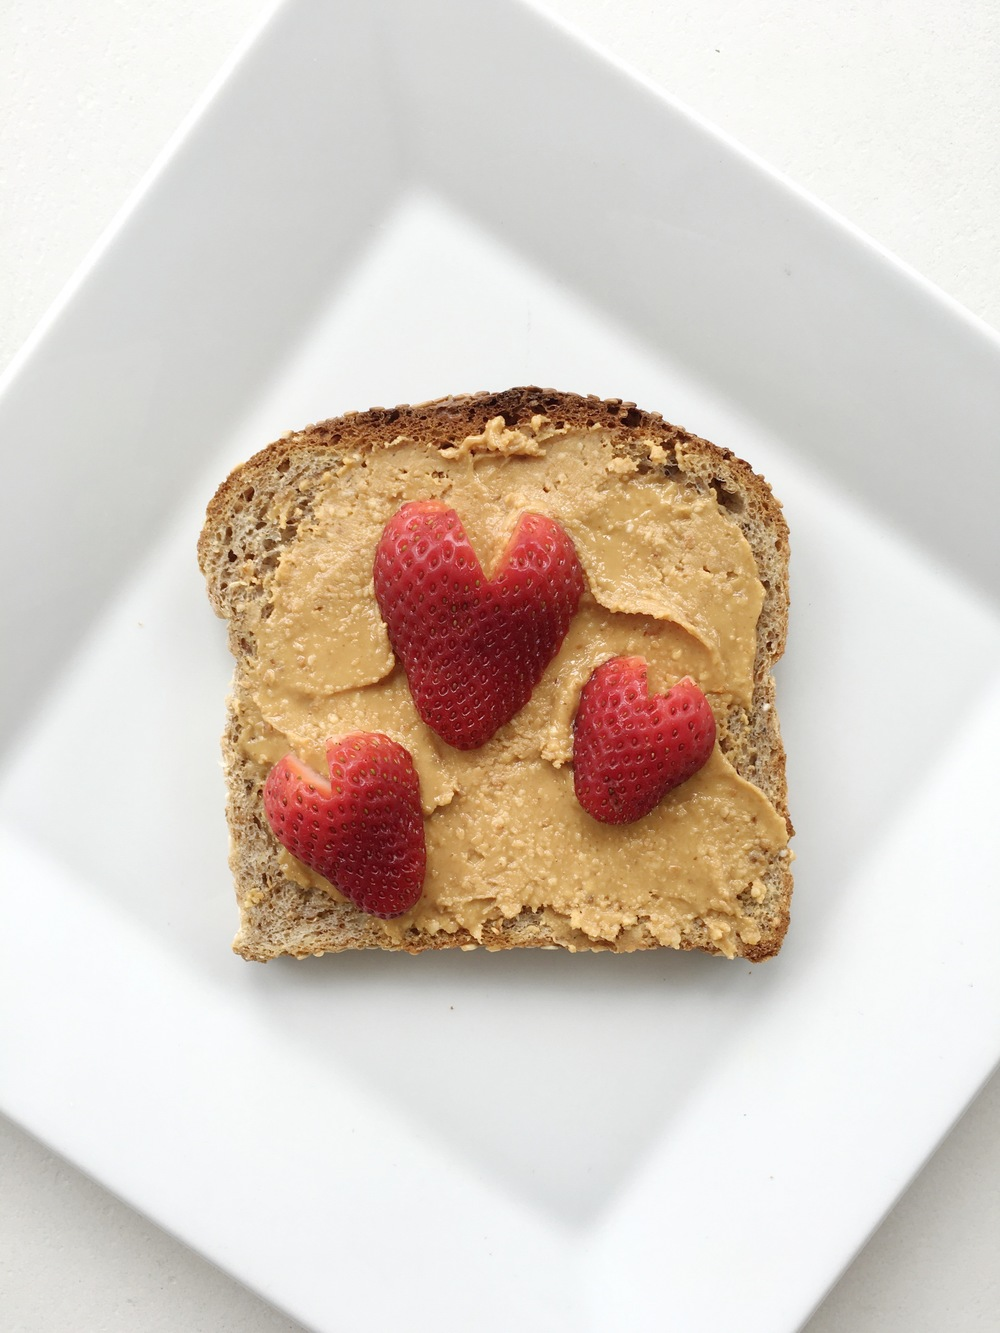 peanut butter + strawberry